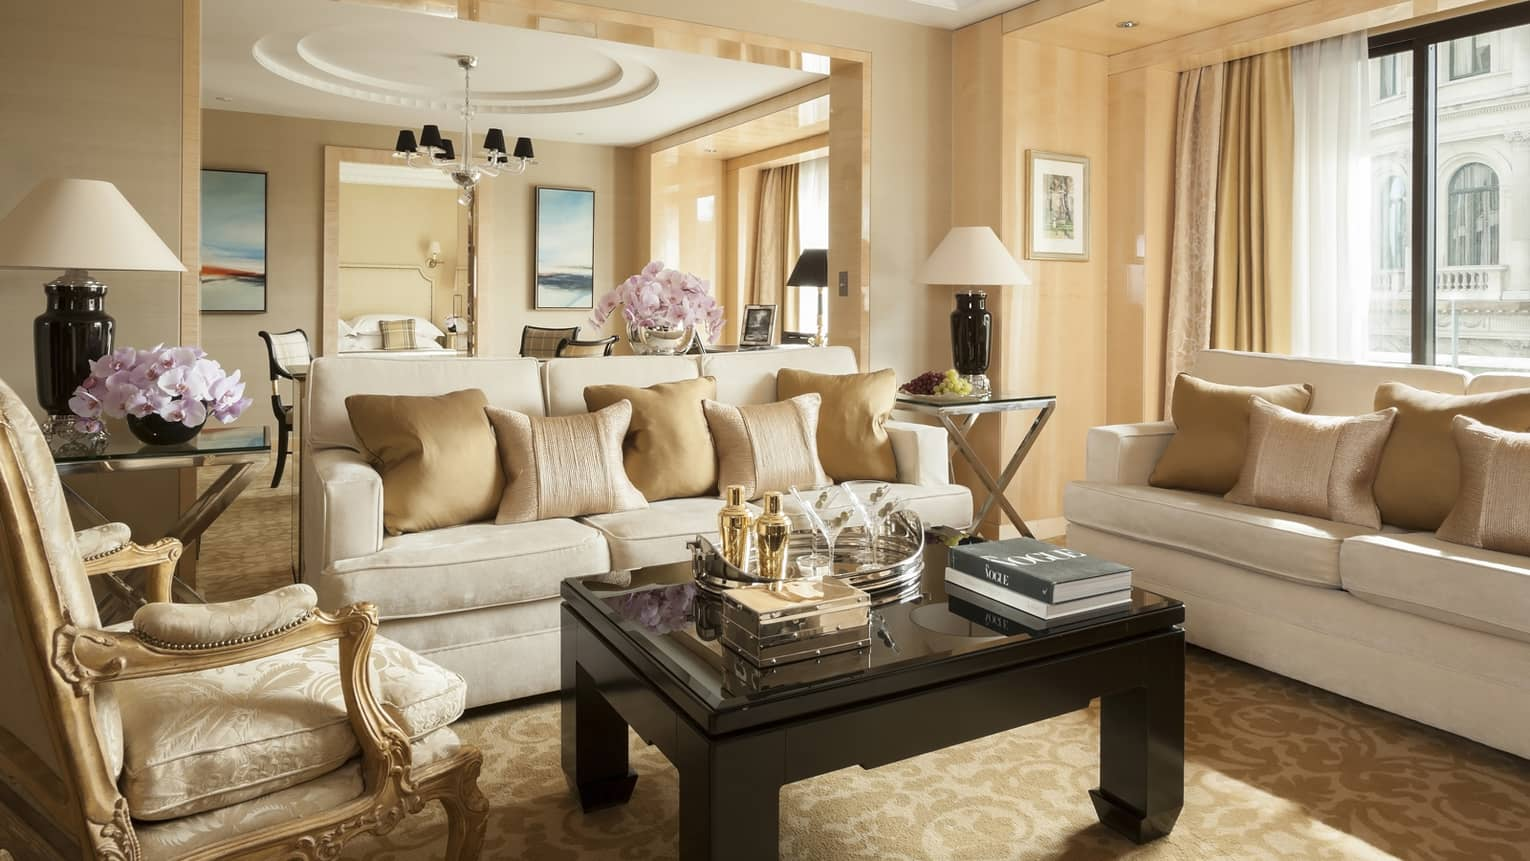 Grand One-Bedroom Suite elegant sofas, gold accent chairs under tall ceilings, dining room in background